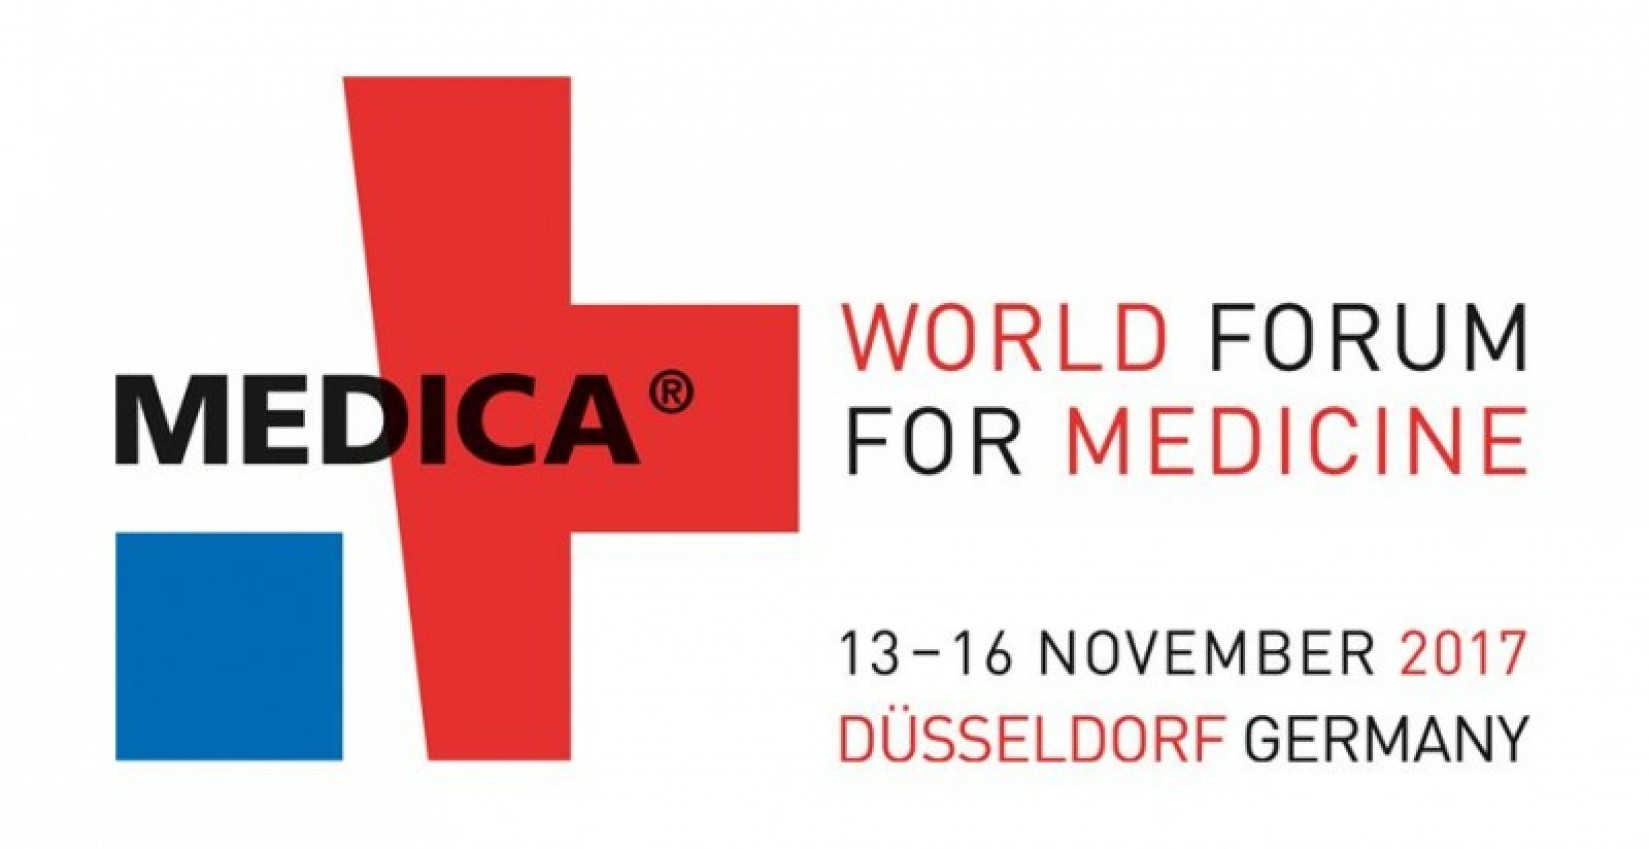 innokasmedical_medica_fair-1.jpg